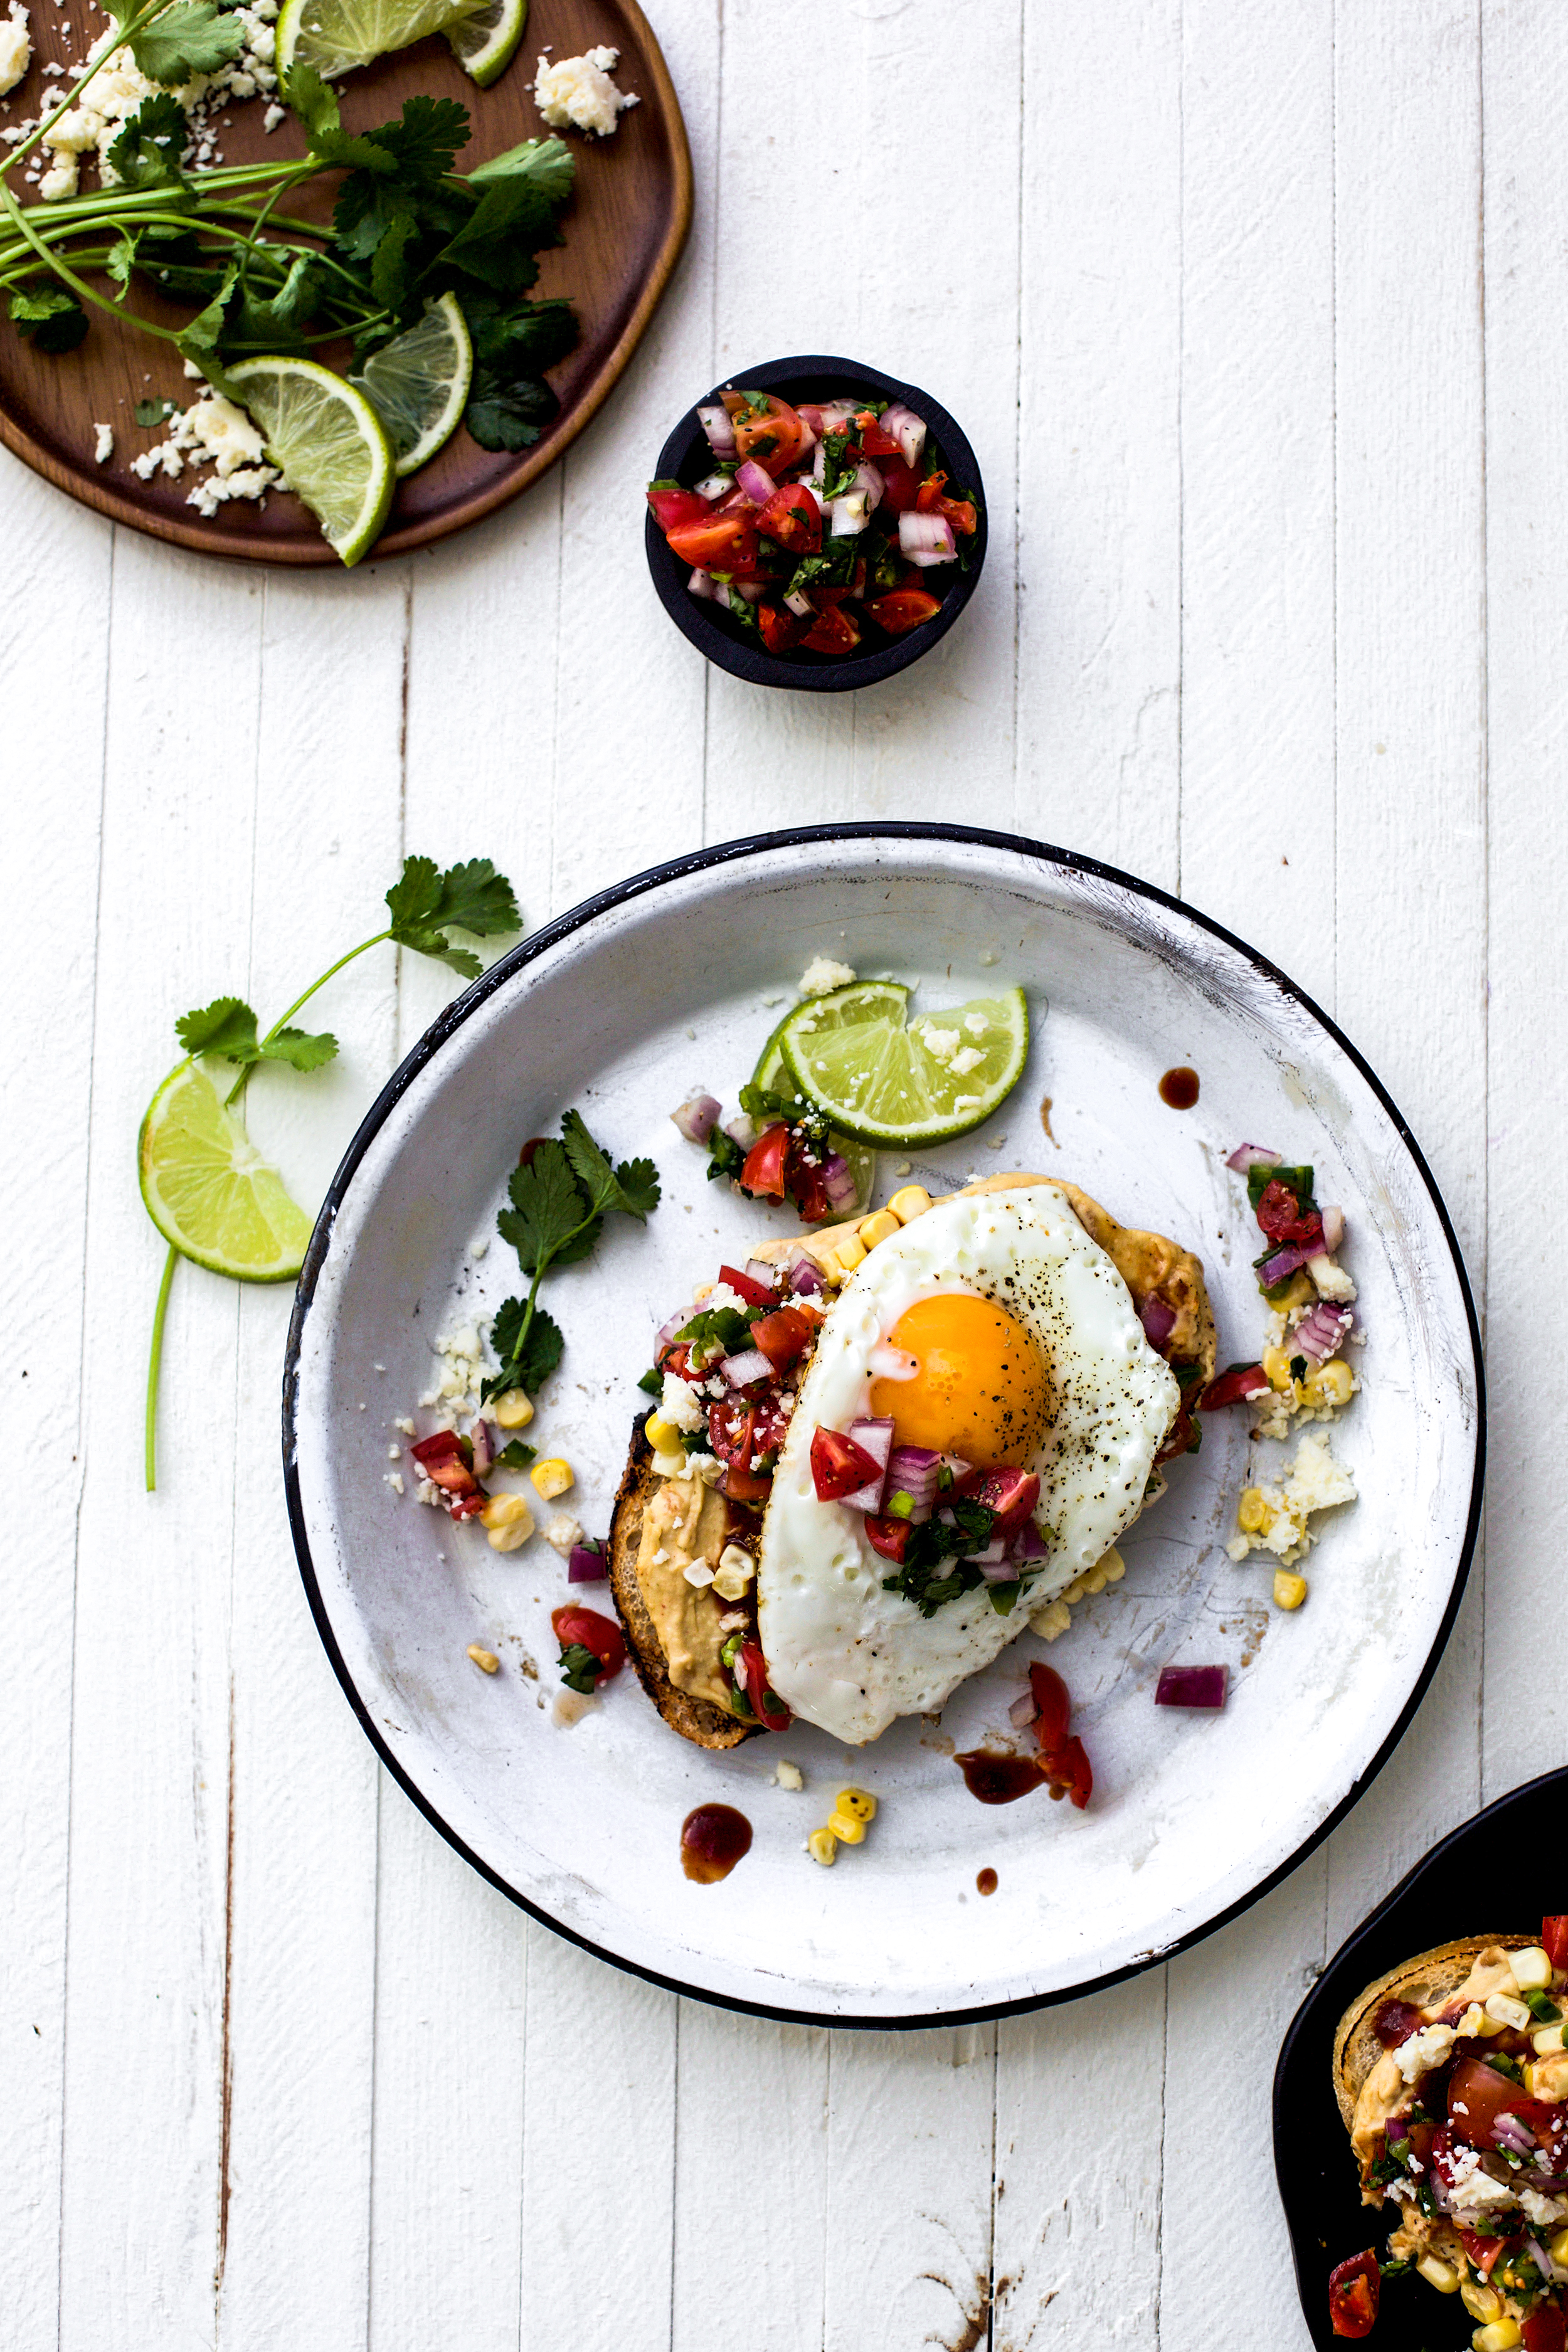 Tex-Mex BBQ Hummus Toast with a Fried Egg